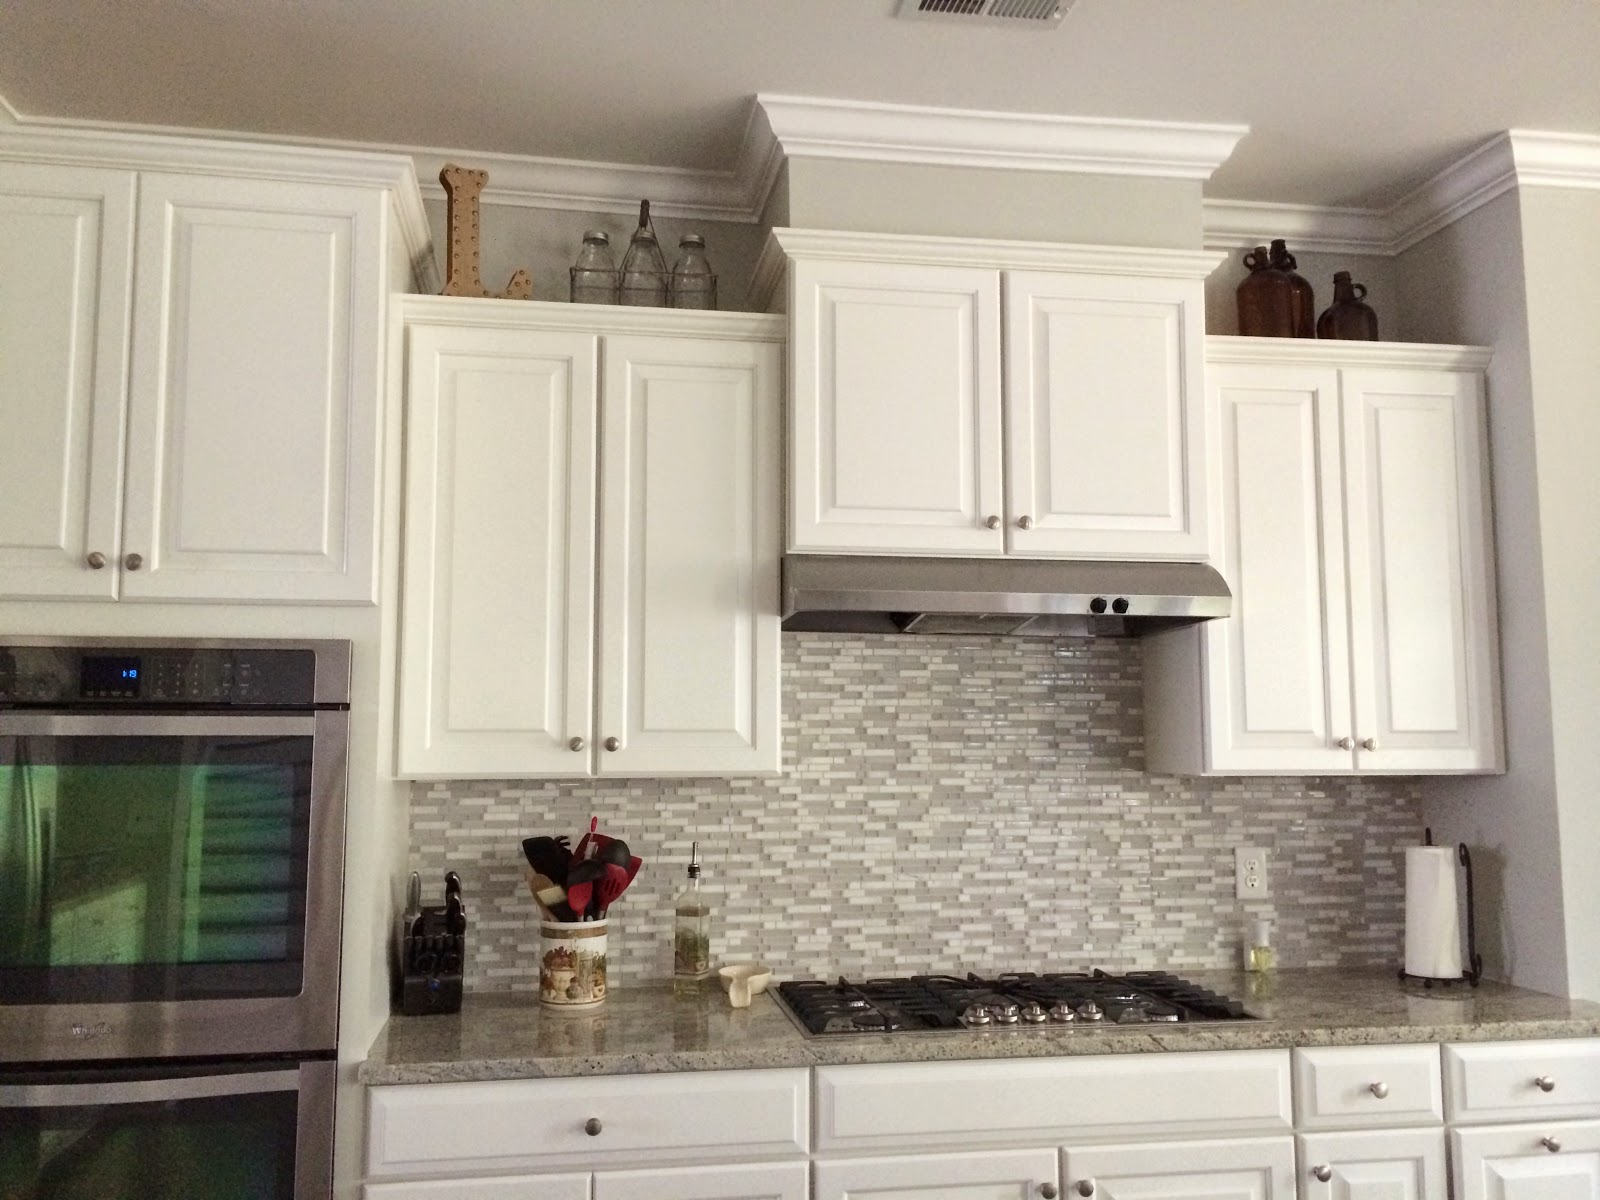 Ideas For Decorating Above Kitchen Cabinets And Tiles on wasted space above kitchen cabinets, interior decorating above kitchen cabinets, decorating tips above kitchen cabinets,